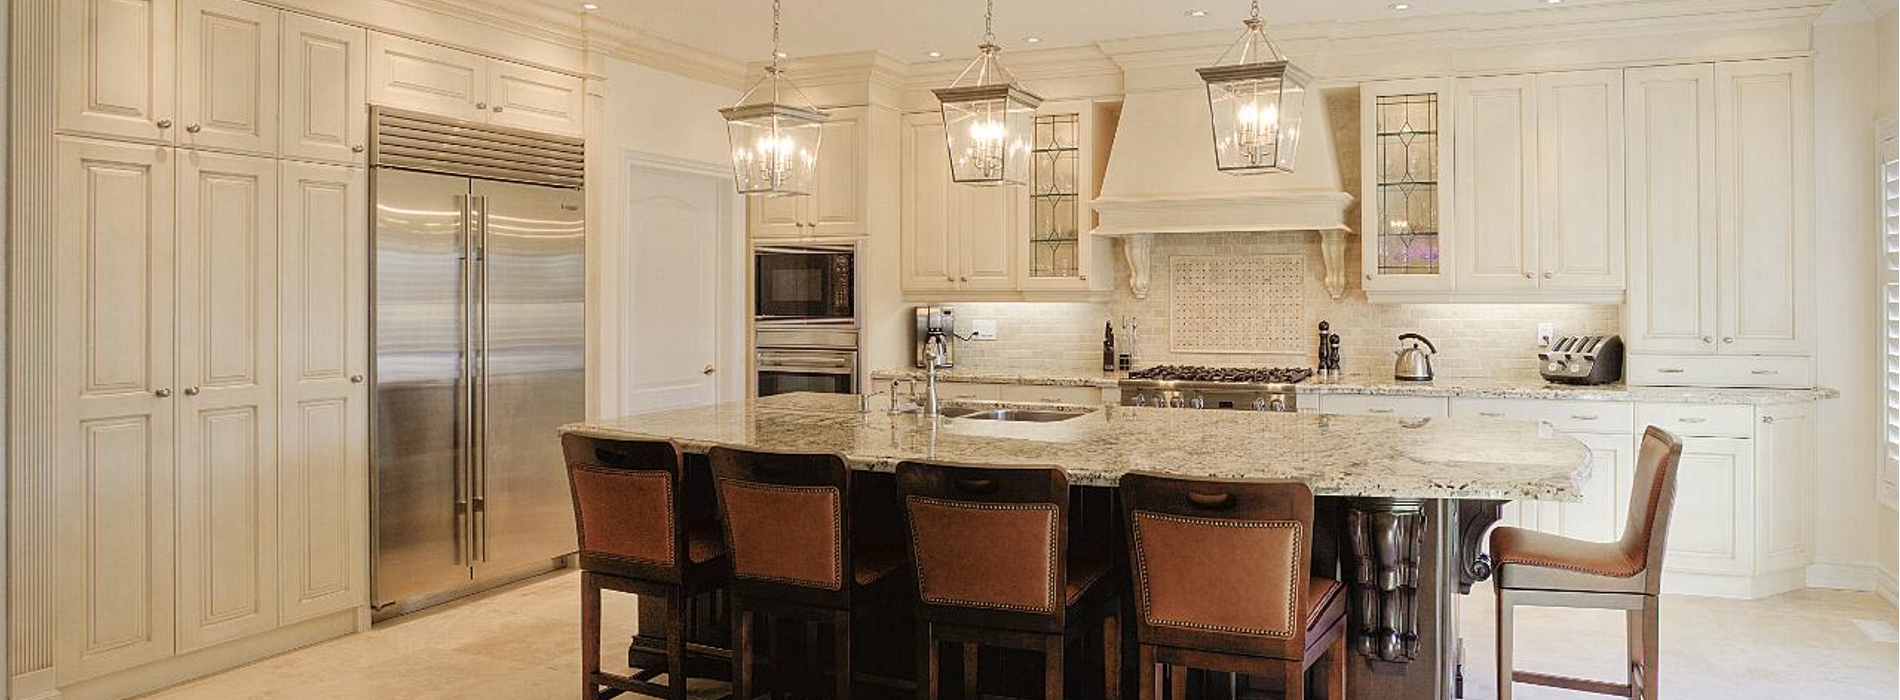 Kitchens & Bathrooms, Design & Remodeling Firm in Raritan, NJ